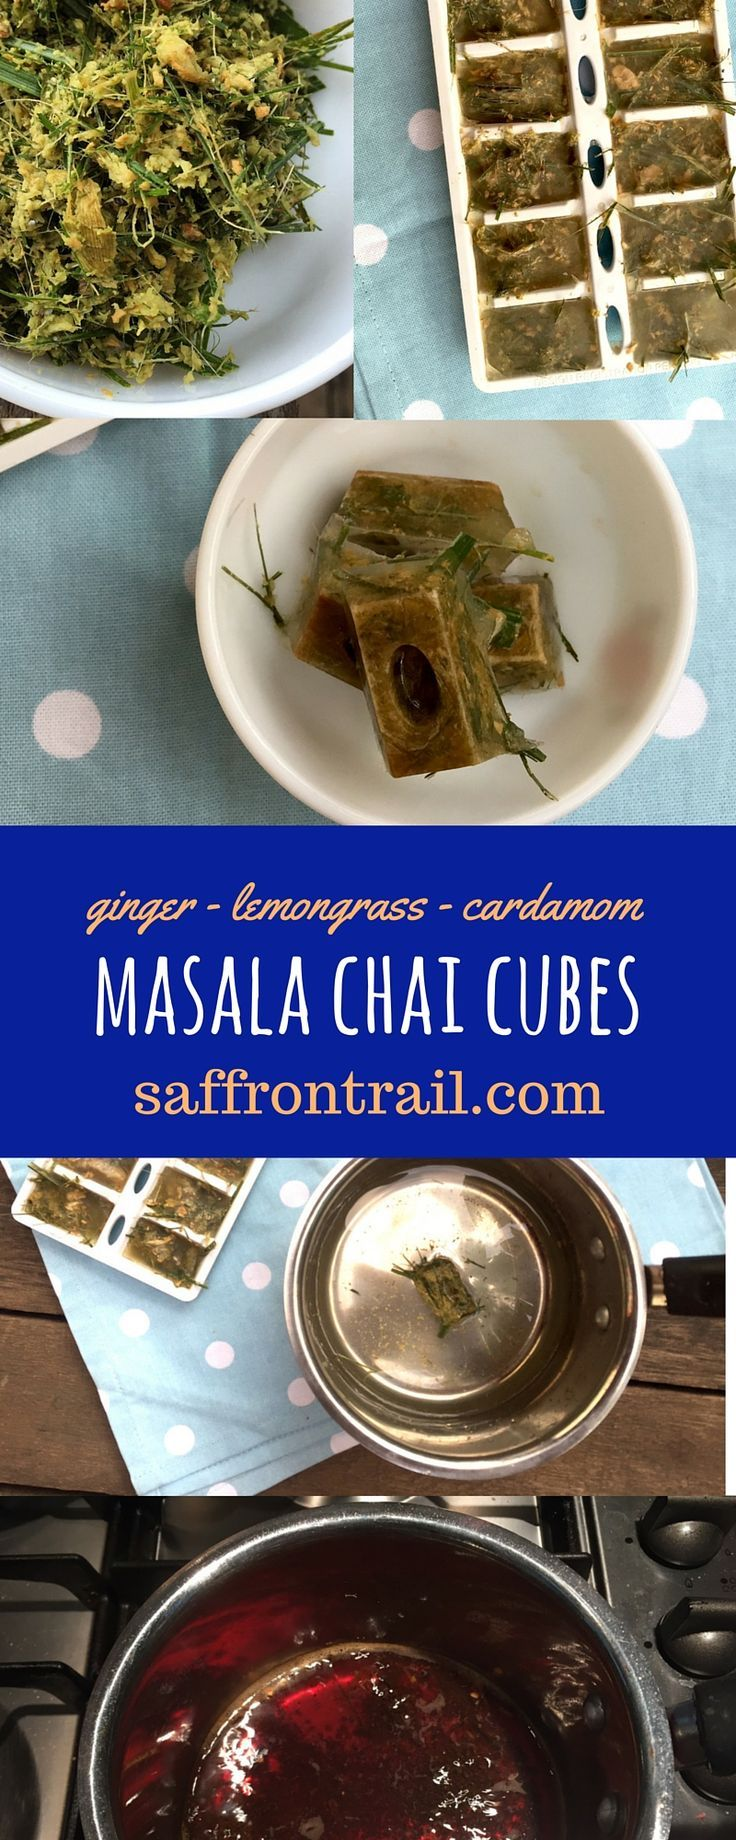 Masala For Homemade Chai | Masala Tea- Freeze & Store A kitchen hack for the chai-lover - a fresh masala mix to make homemade masala chai,  store this fresh spice mix in the ice tray and use 1 cube per cup of chai. ENJOY :)